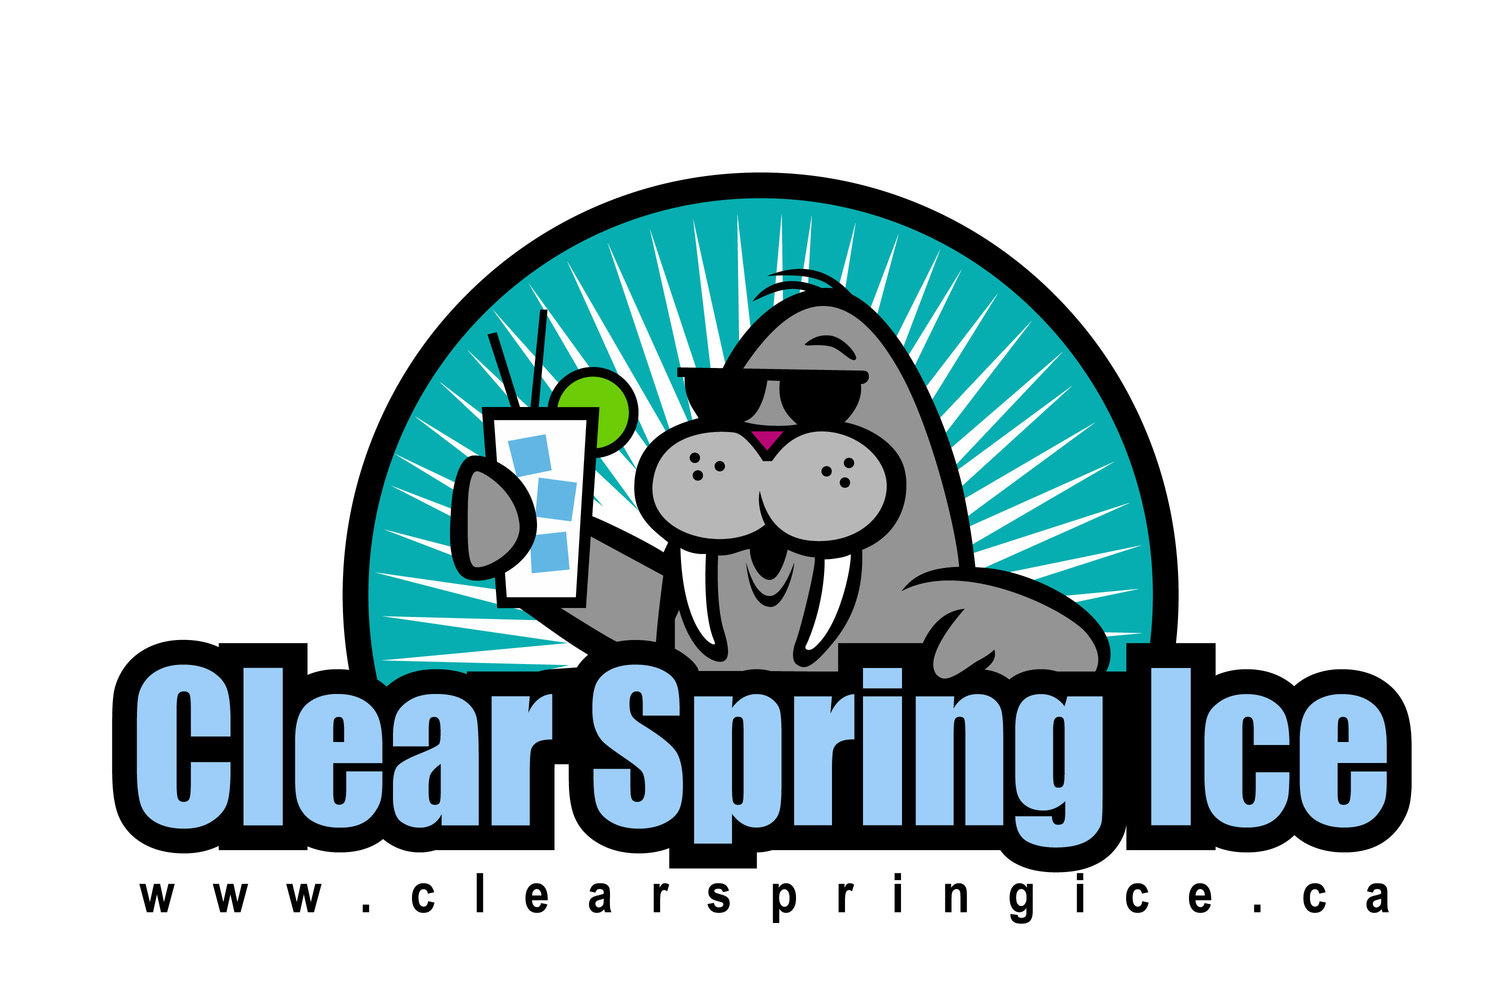 Clear Spring Ice